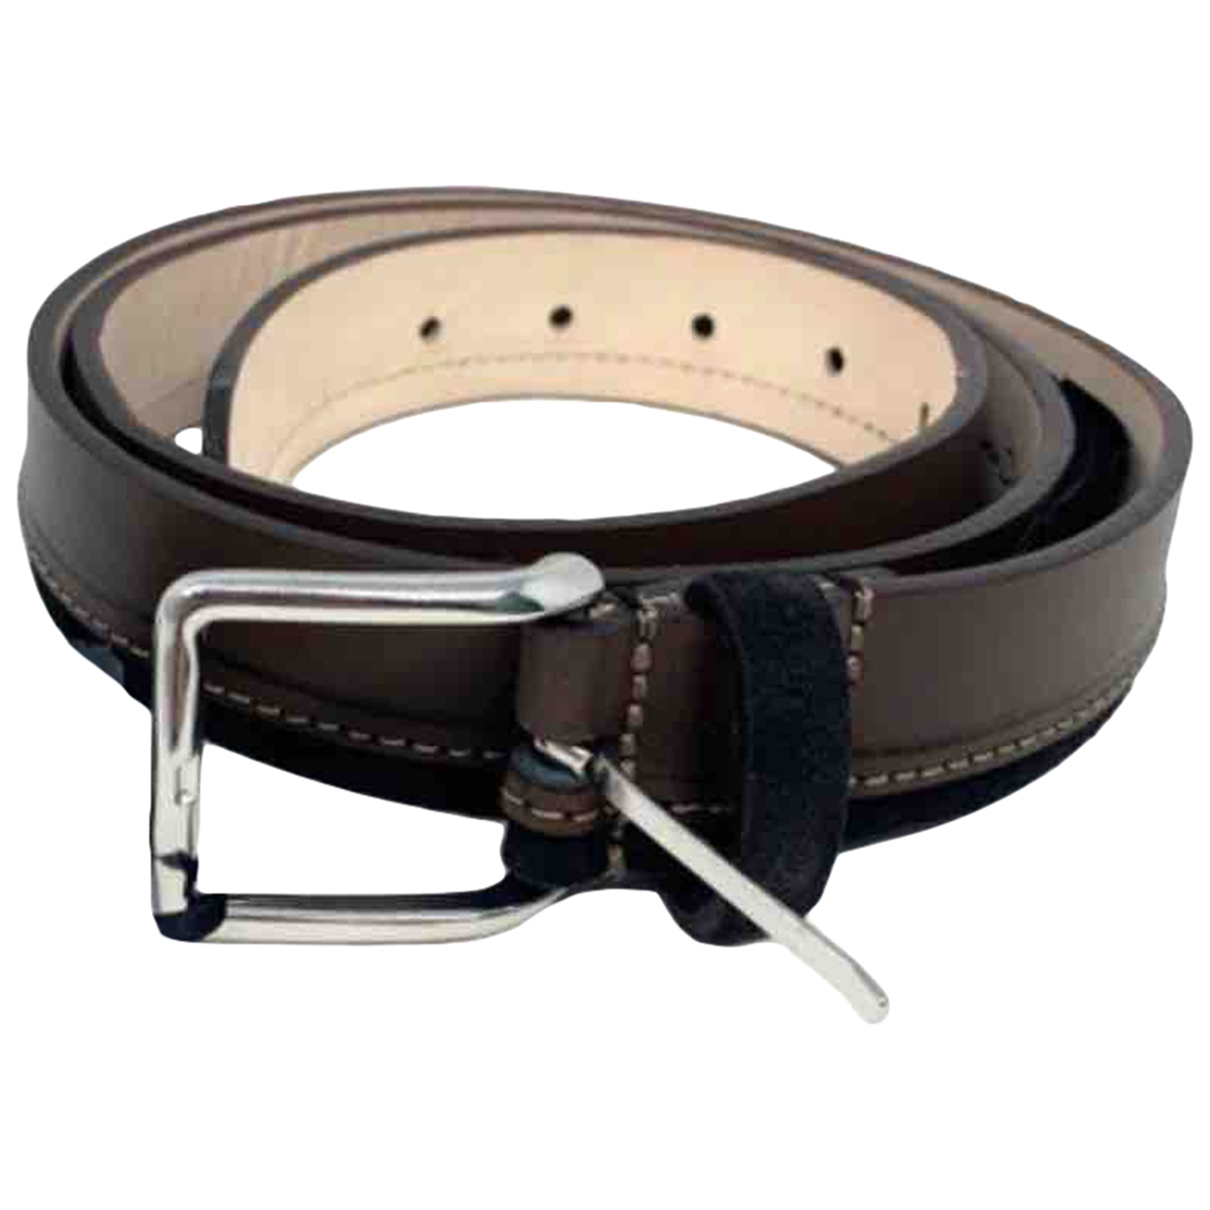 Massimo Dutti \N Brown Leather belt for Men M international